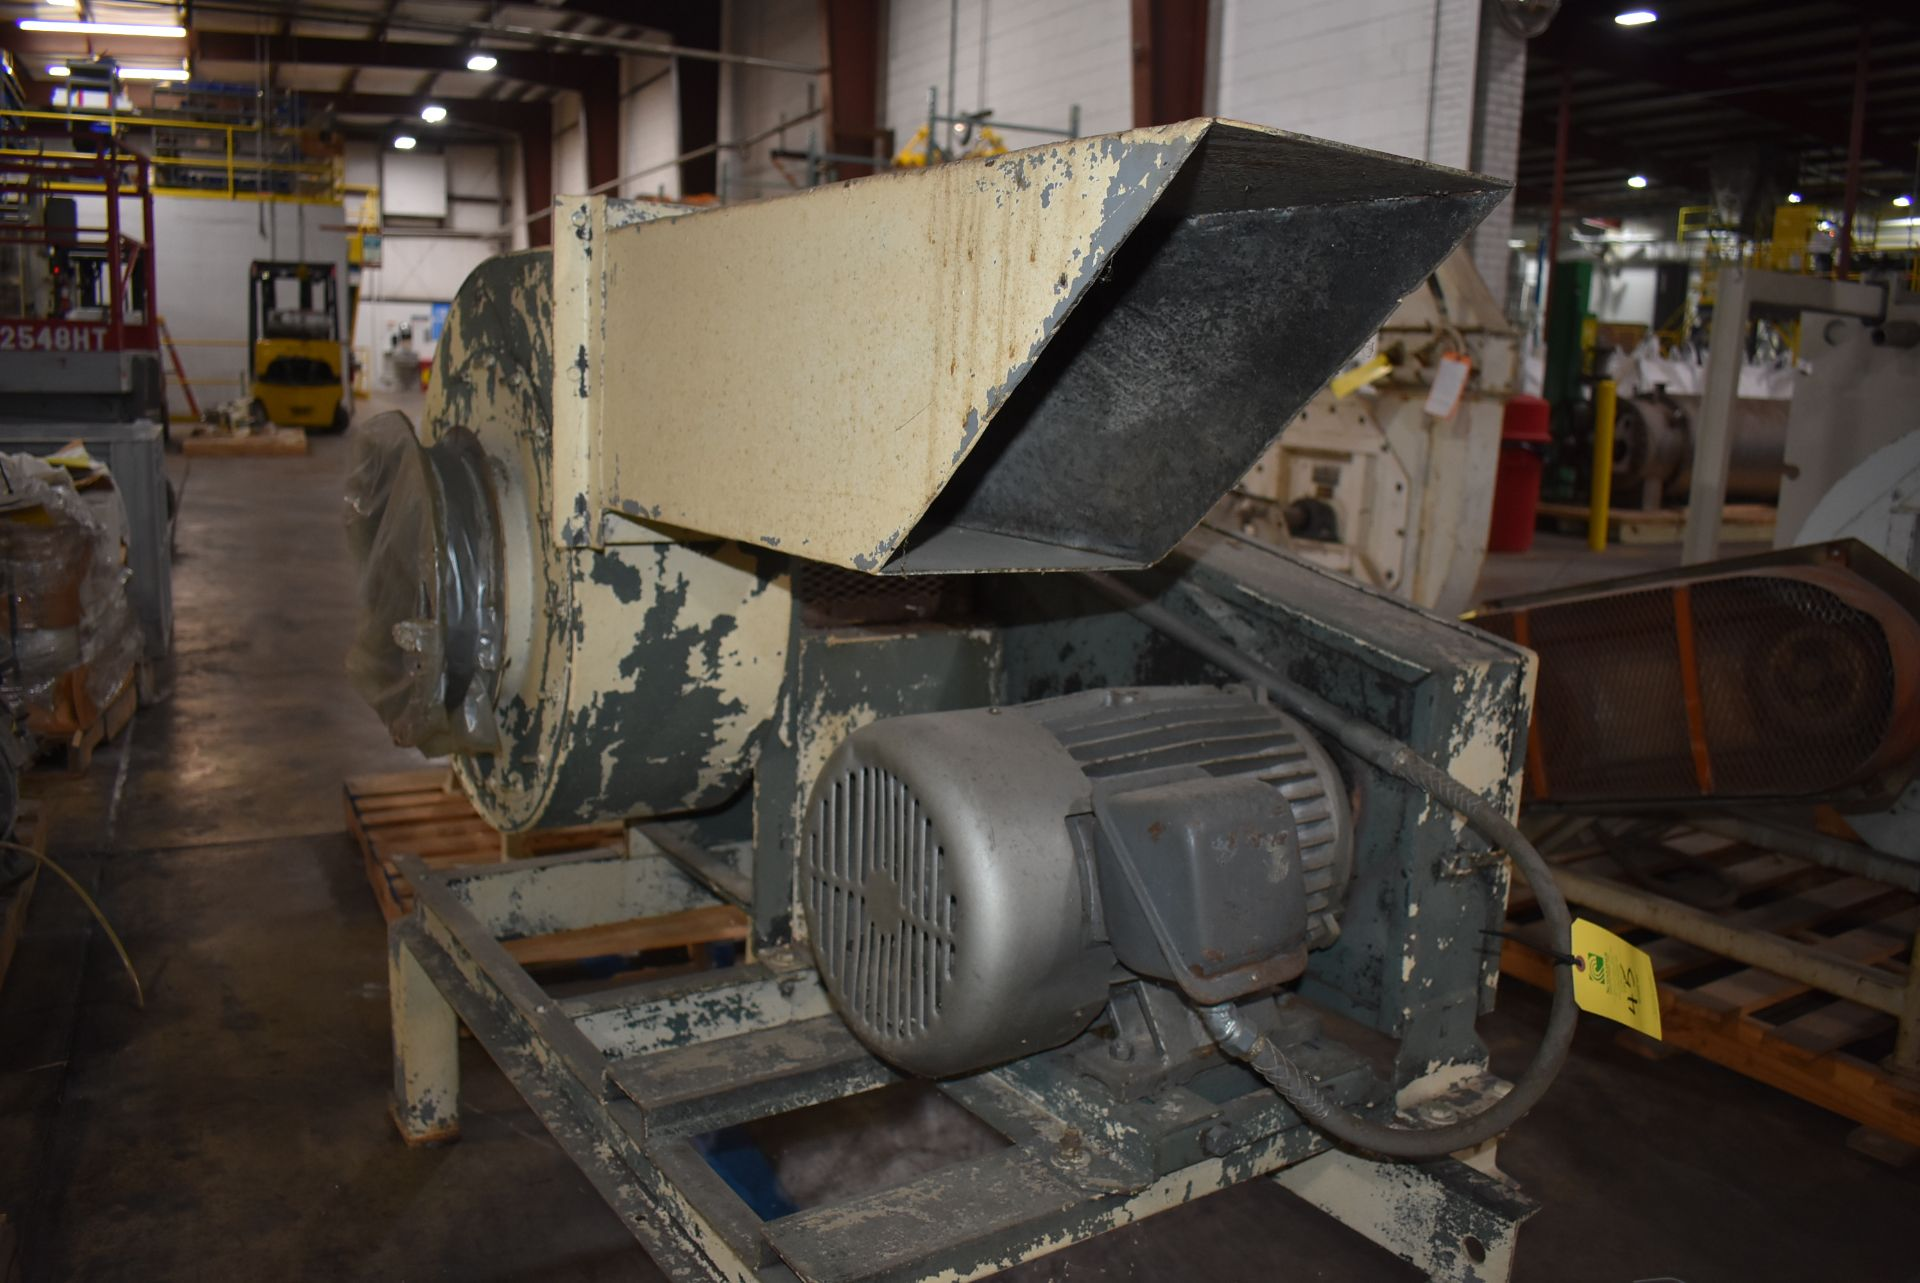 New York Blower, Size 174 w/15 HP Motor - Image 3 of 3